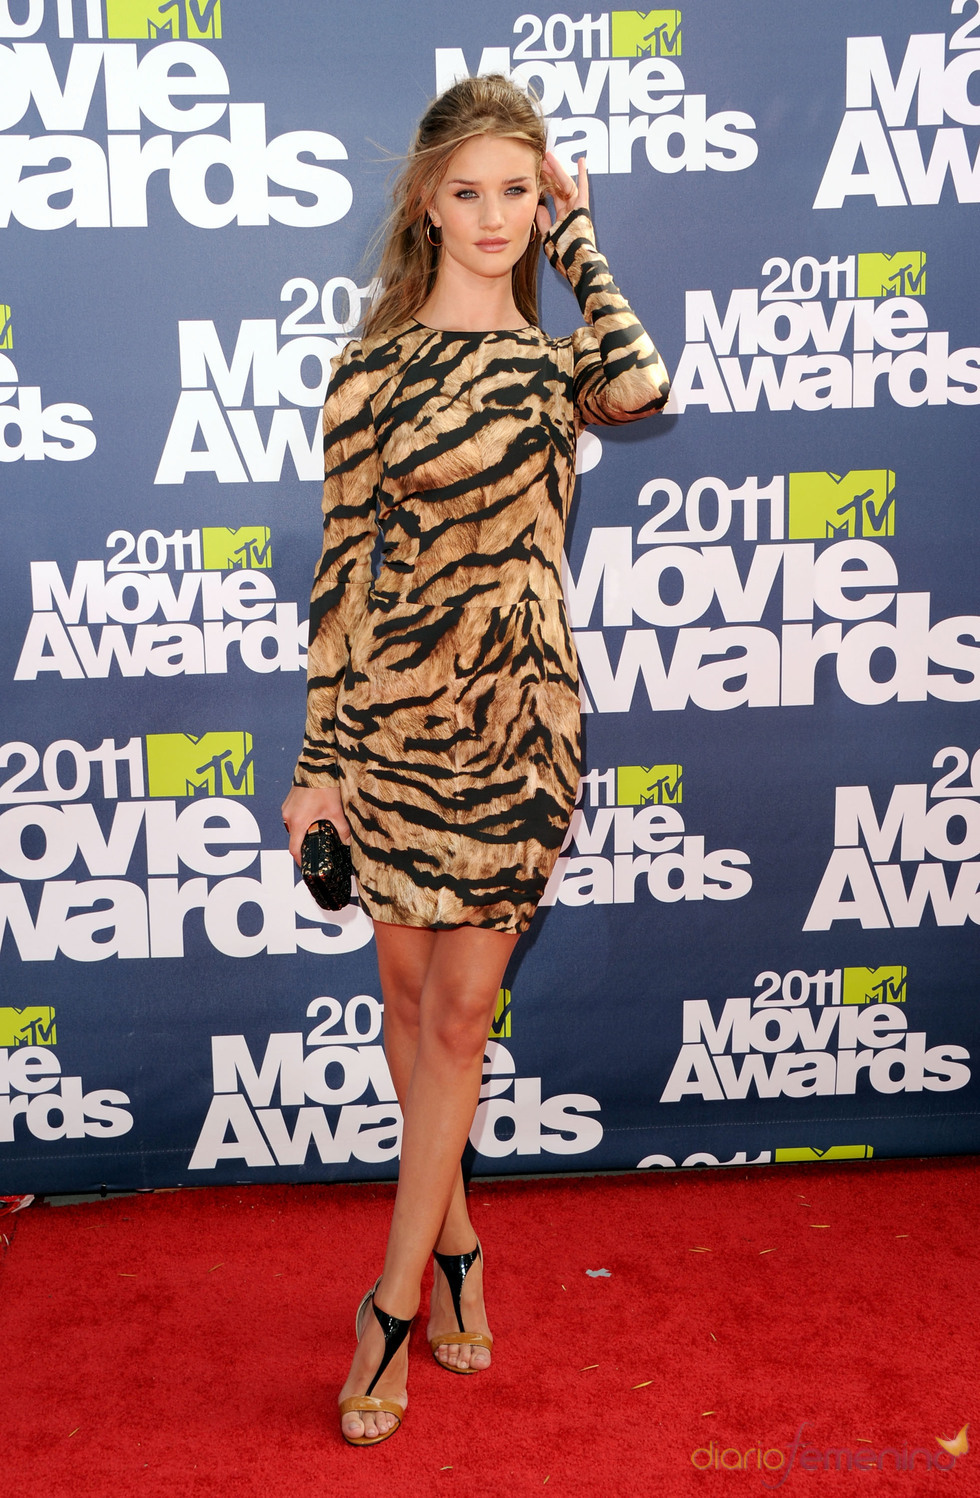 Rosie Huntington-Whiteley a su llegada a los premios MTV Movie Awards 2011